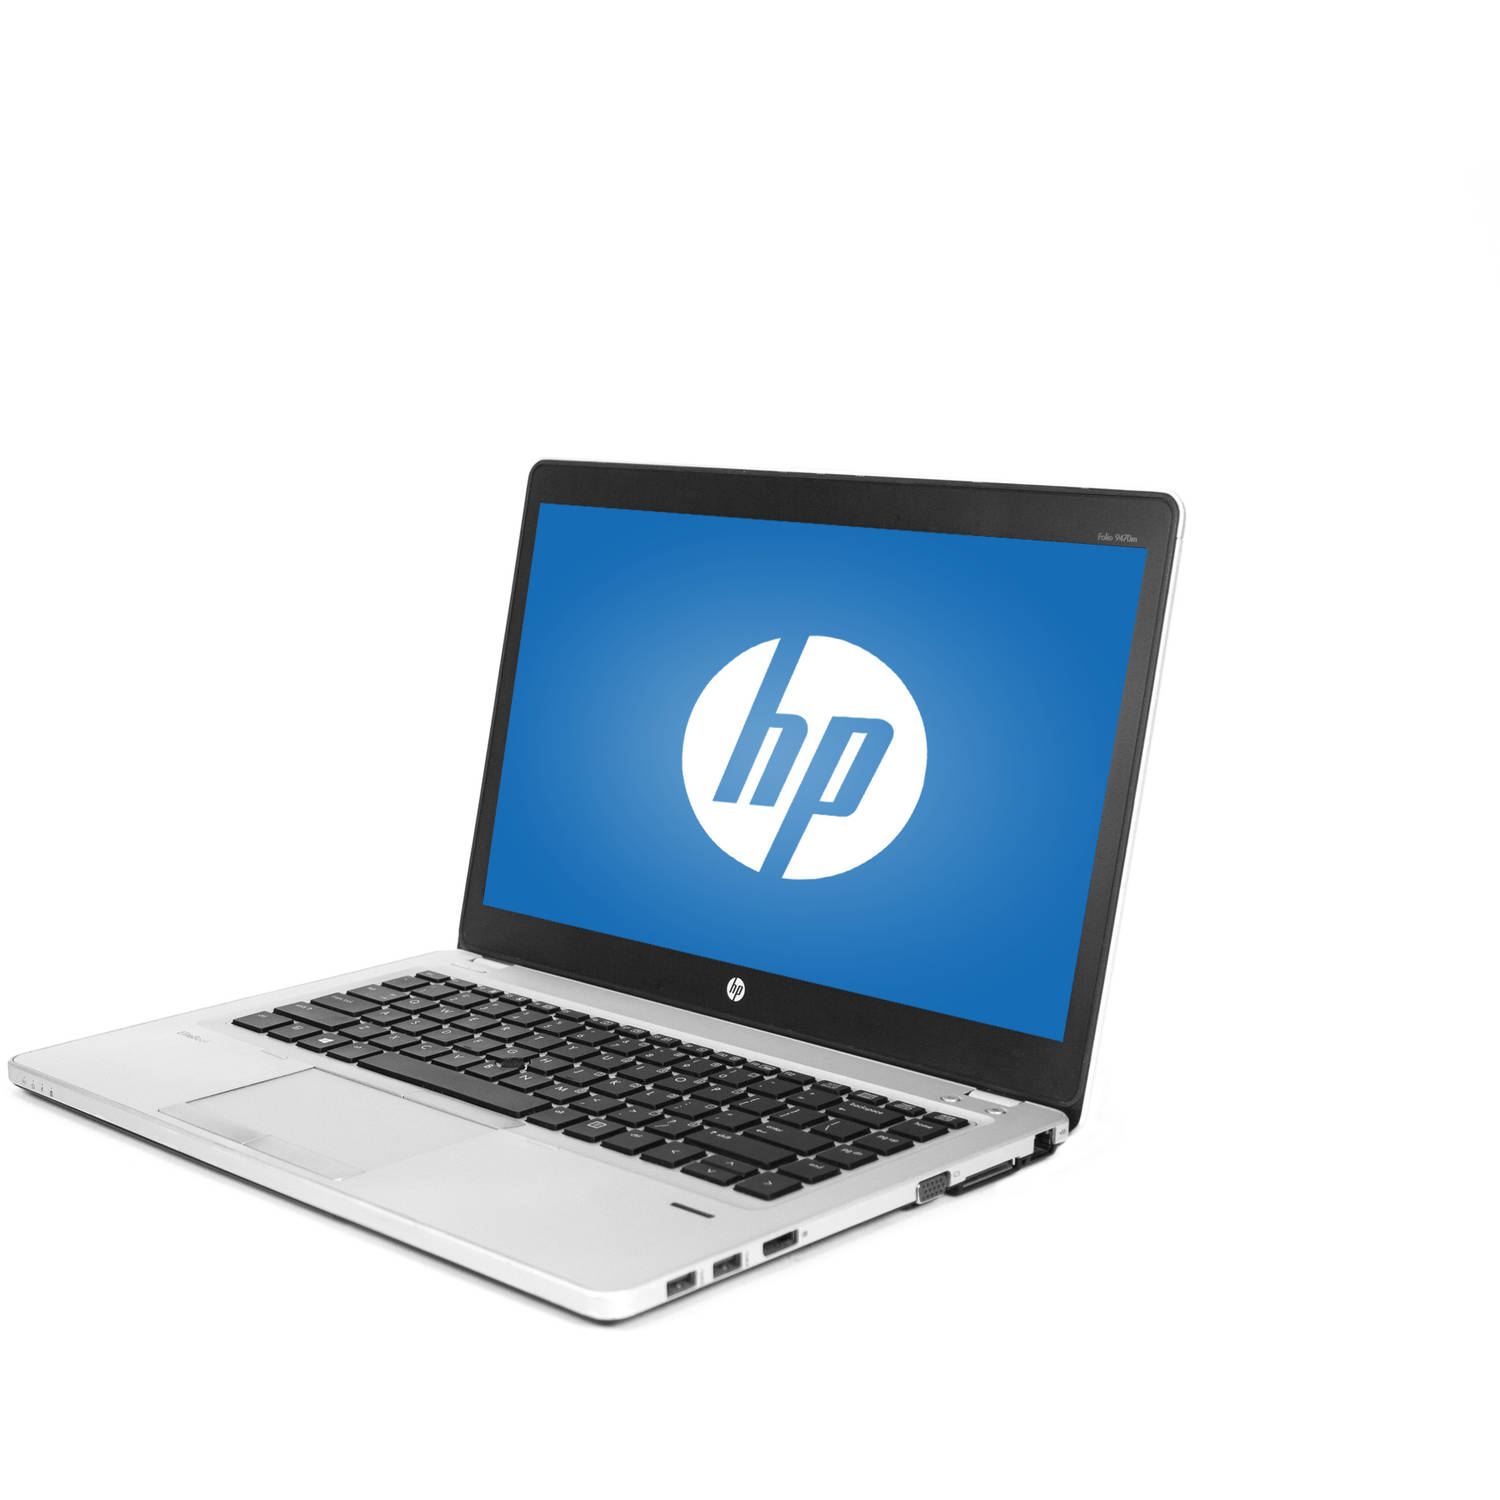 "Refurbished HP Ultrabook Silver 14"" EliteBook Folio 9470M WA5-1153 Laptop PC with"